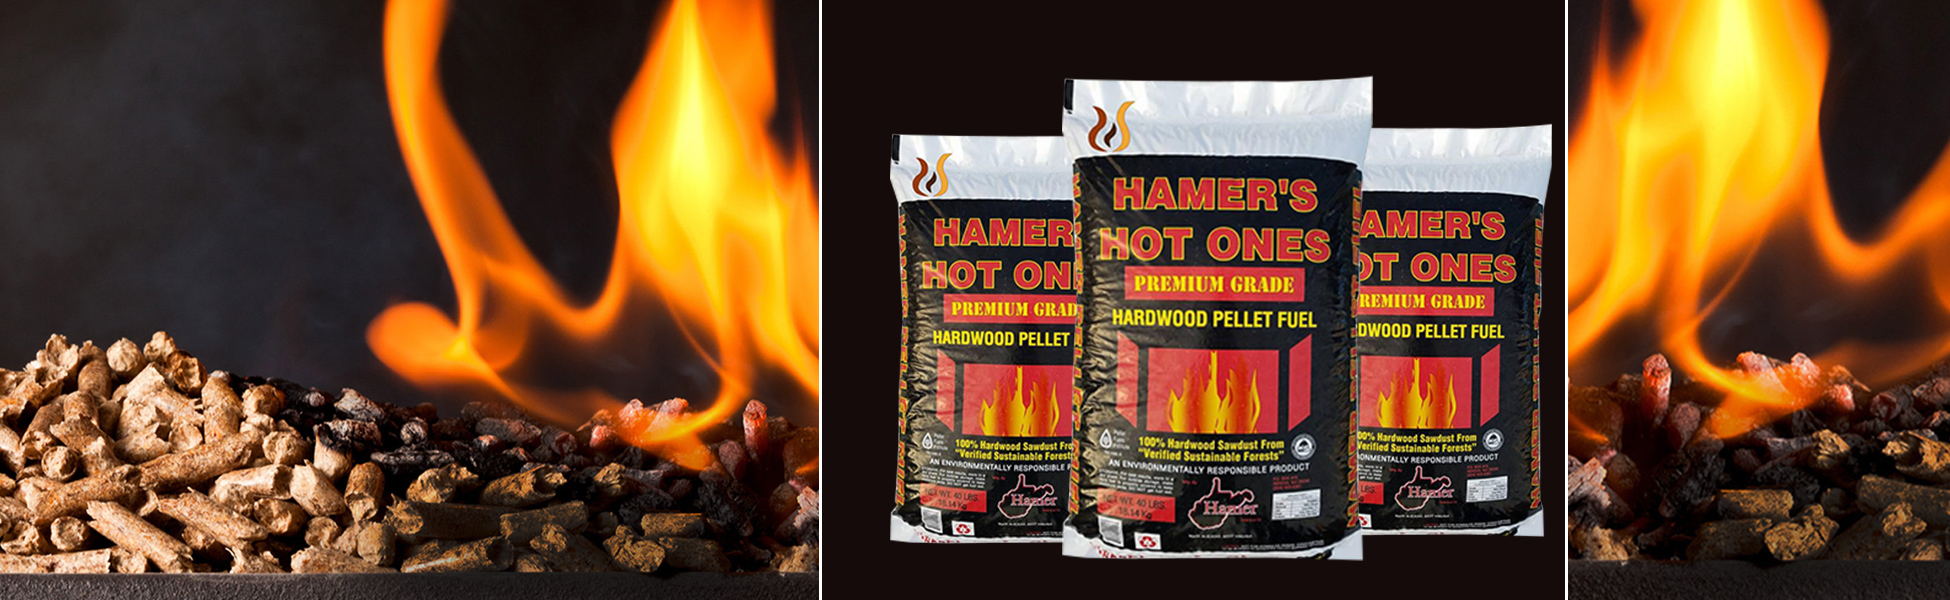 Hamer's wood pellets